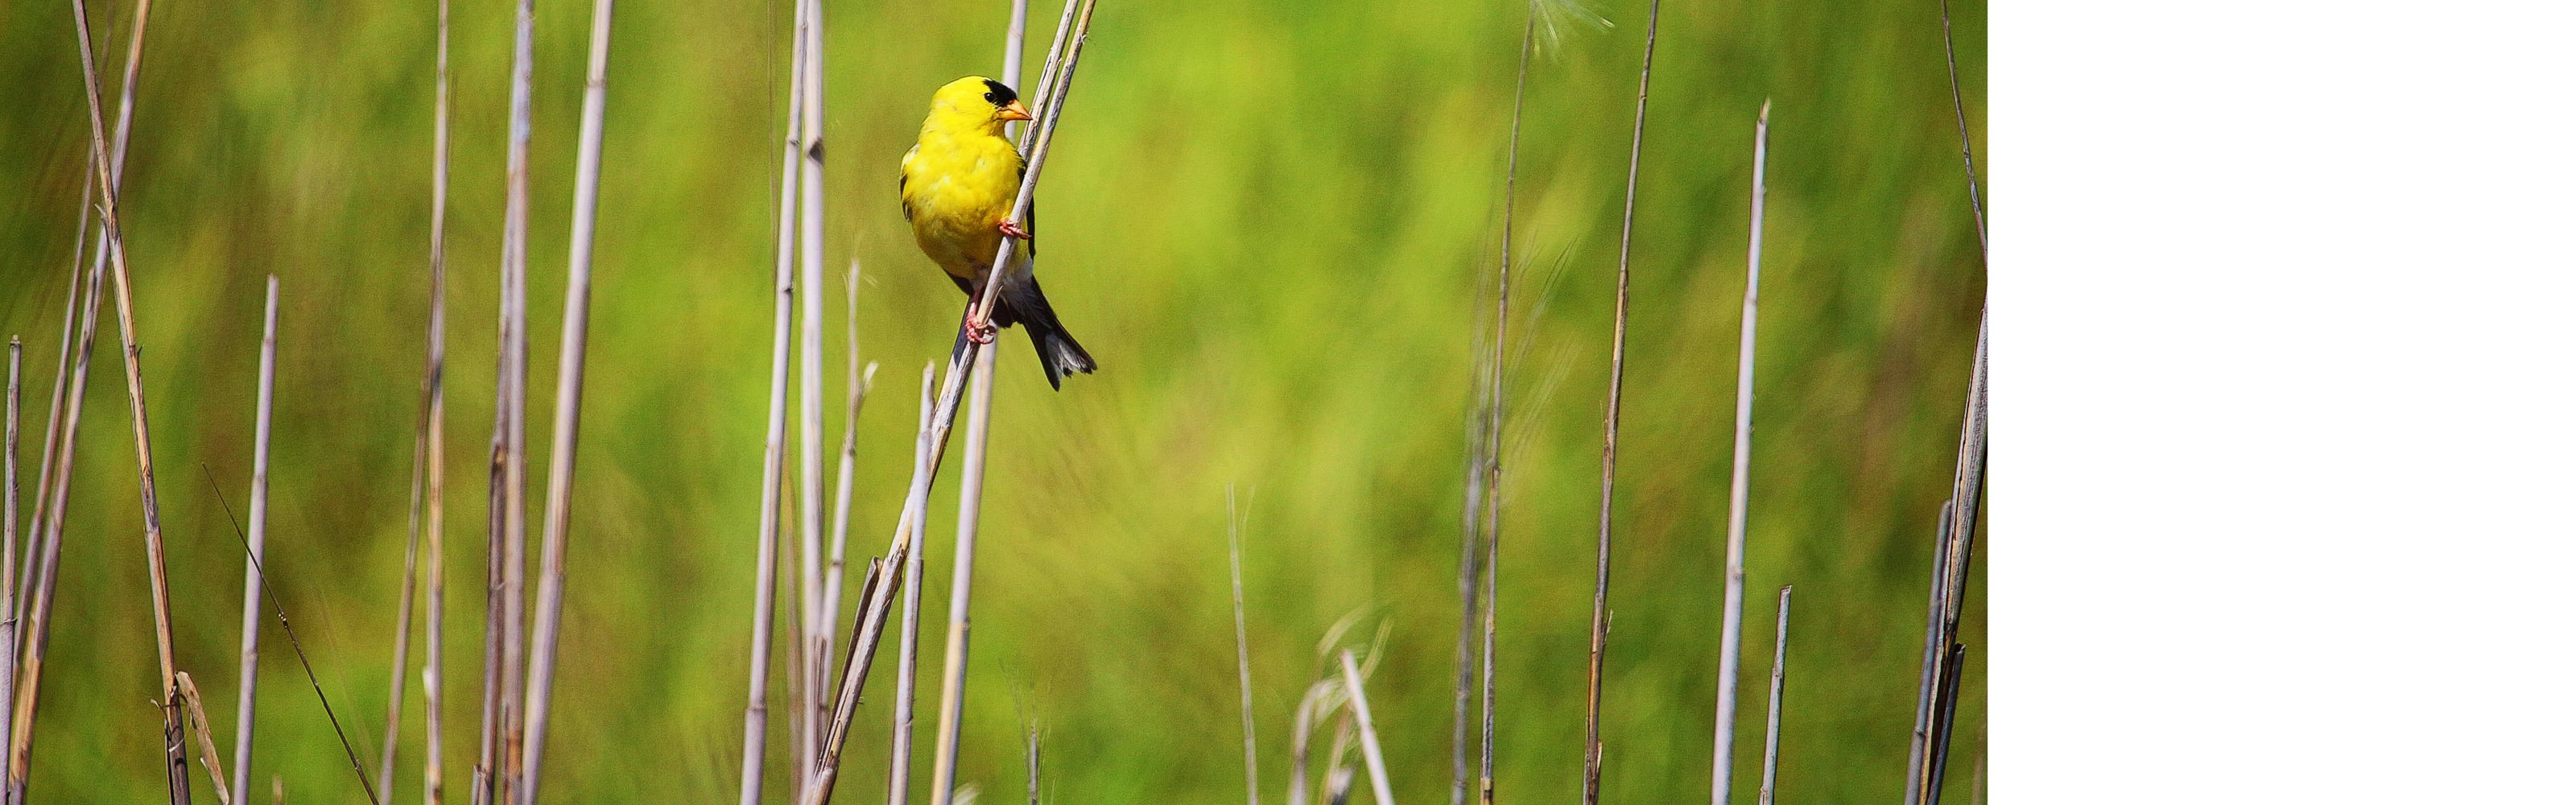 American Goldfinch at Bombay Hook National Wildlife Refuge in Kent County, Delaware.